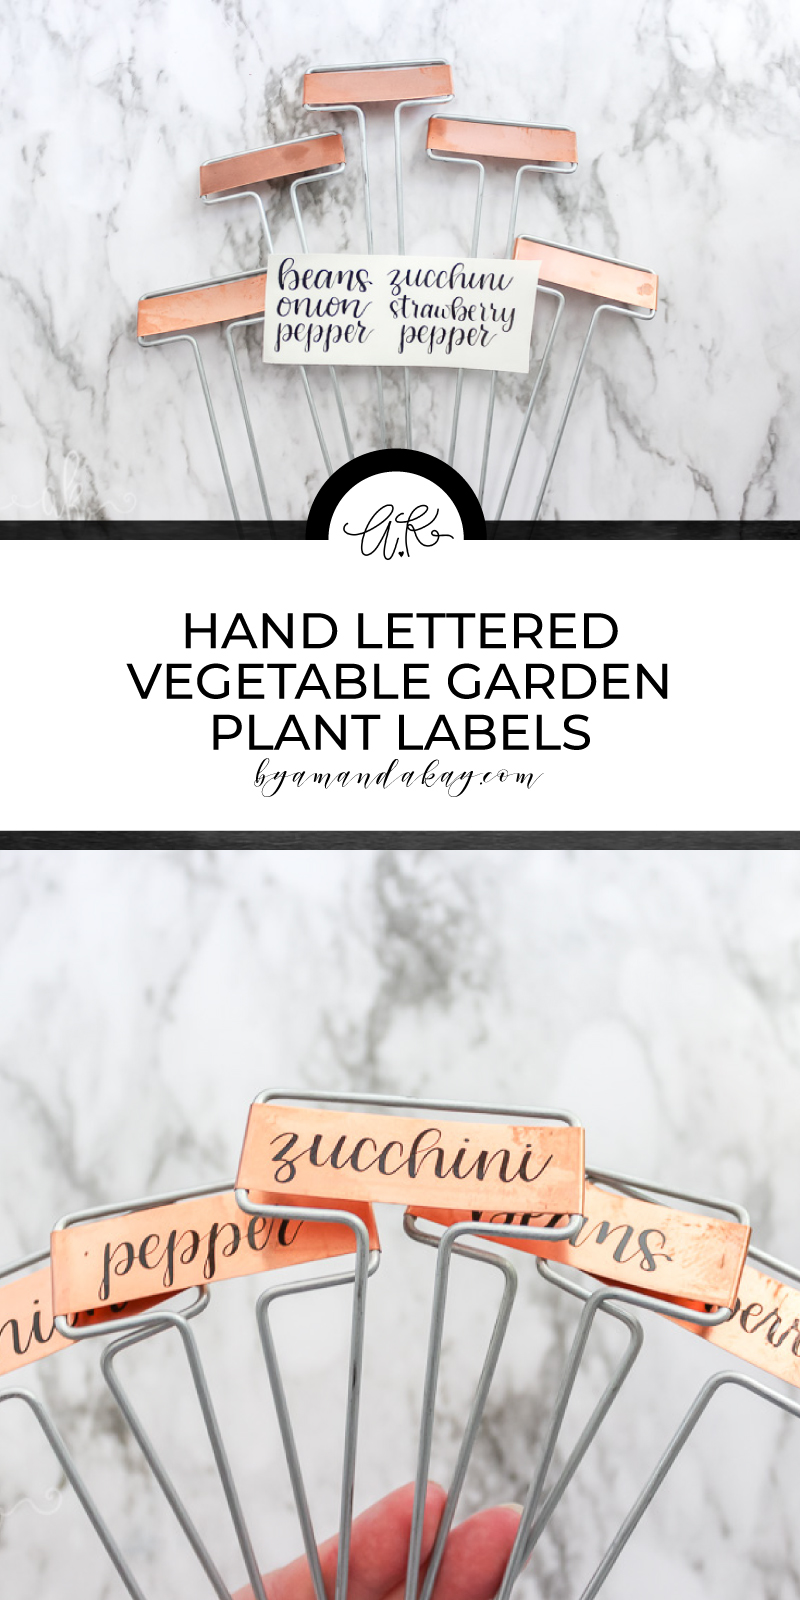 Pinterest, hand lettered vegetable plant labels